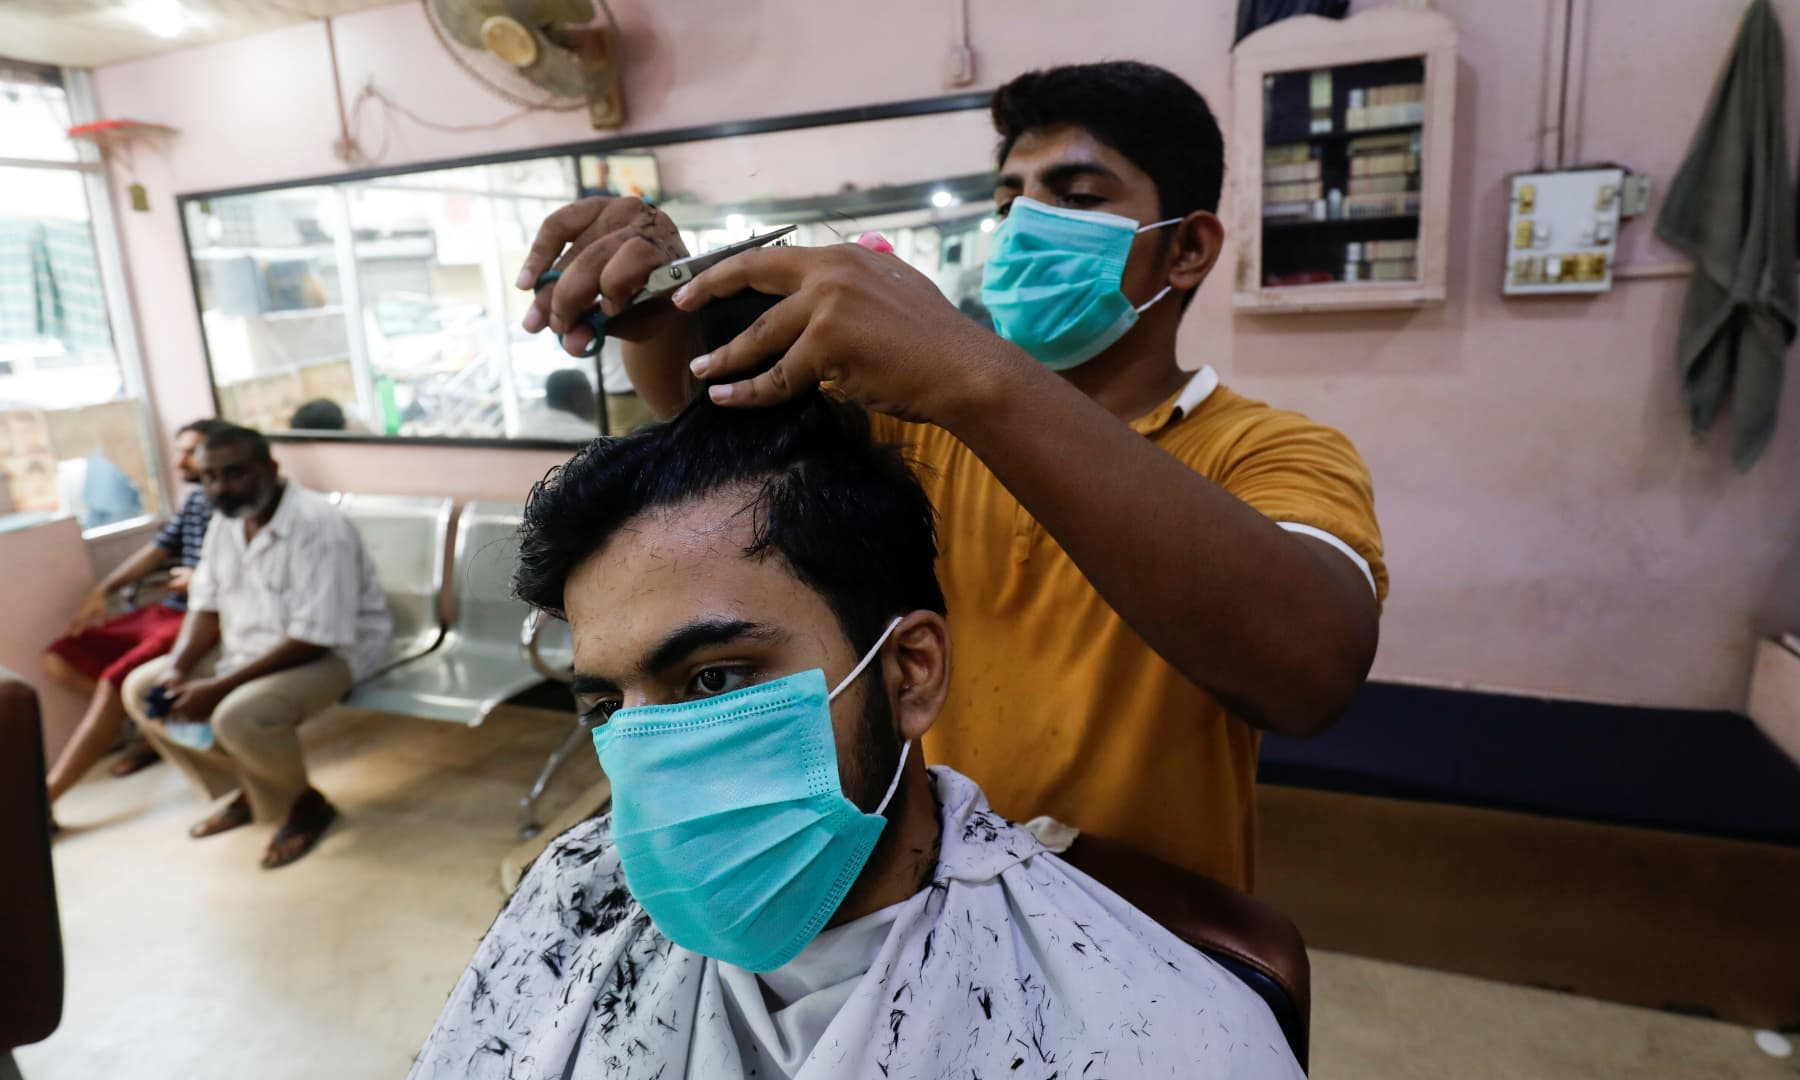 A man wears a protective mask as he gets a haircut at a barbershop in Karachi, August 10. — Reuters